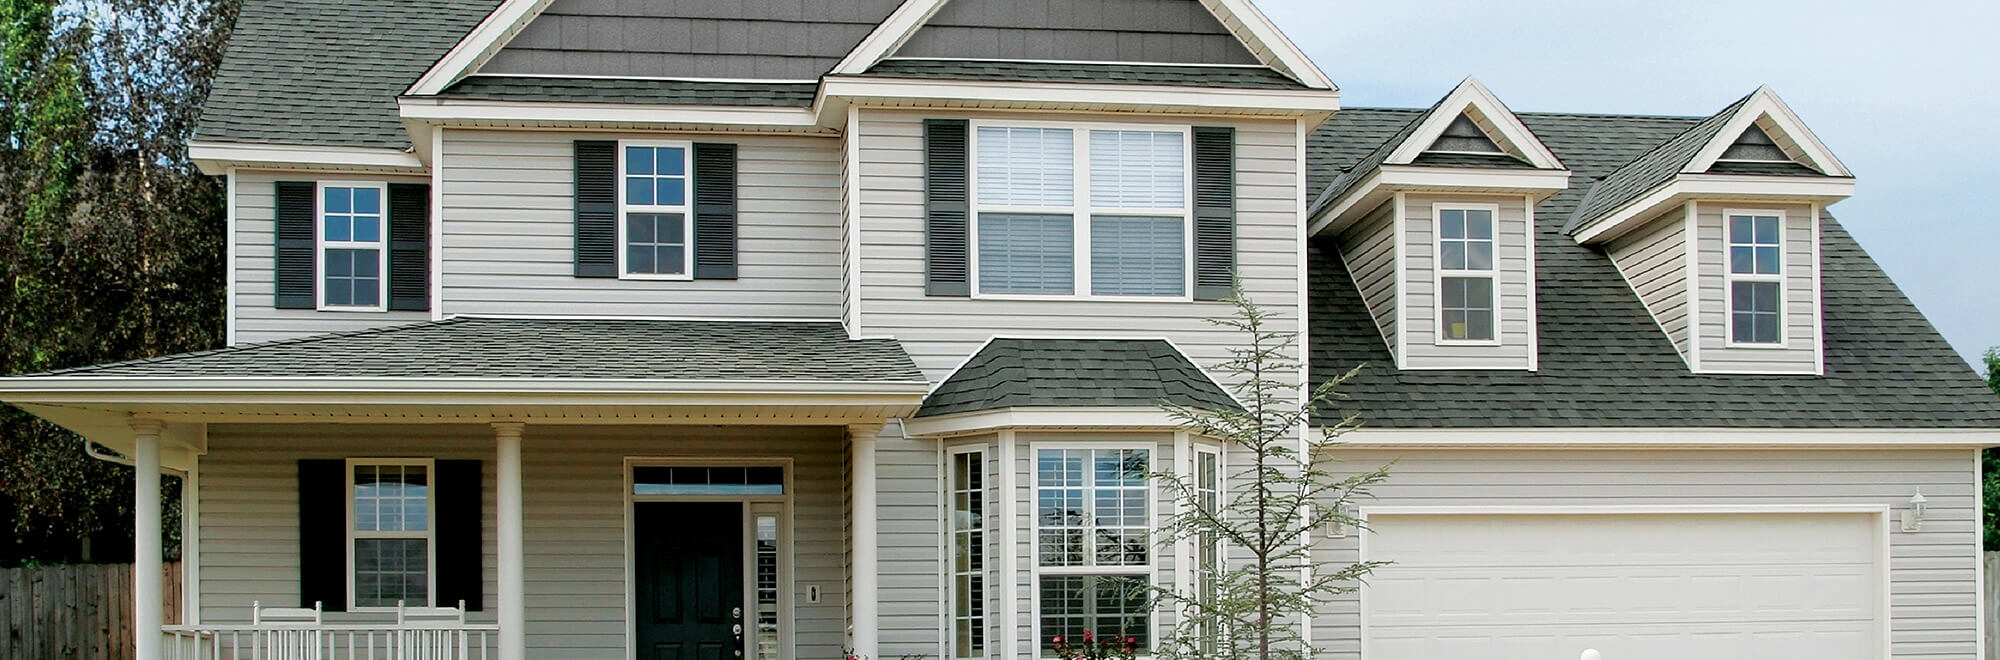 Power Home Remodeling Windows 28 Images Power Home Remodeling Windows 28 Images Energy